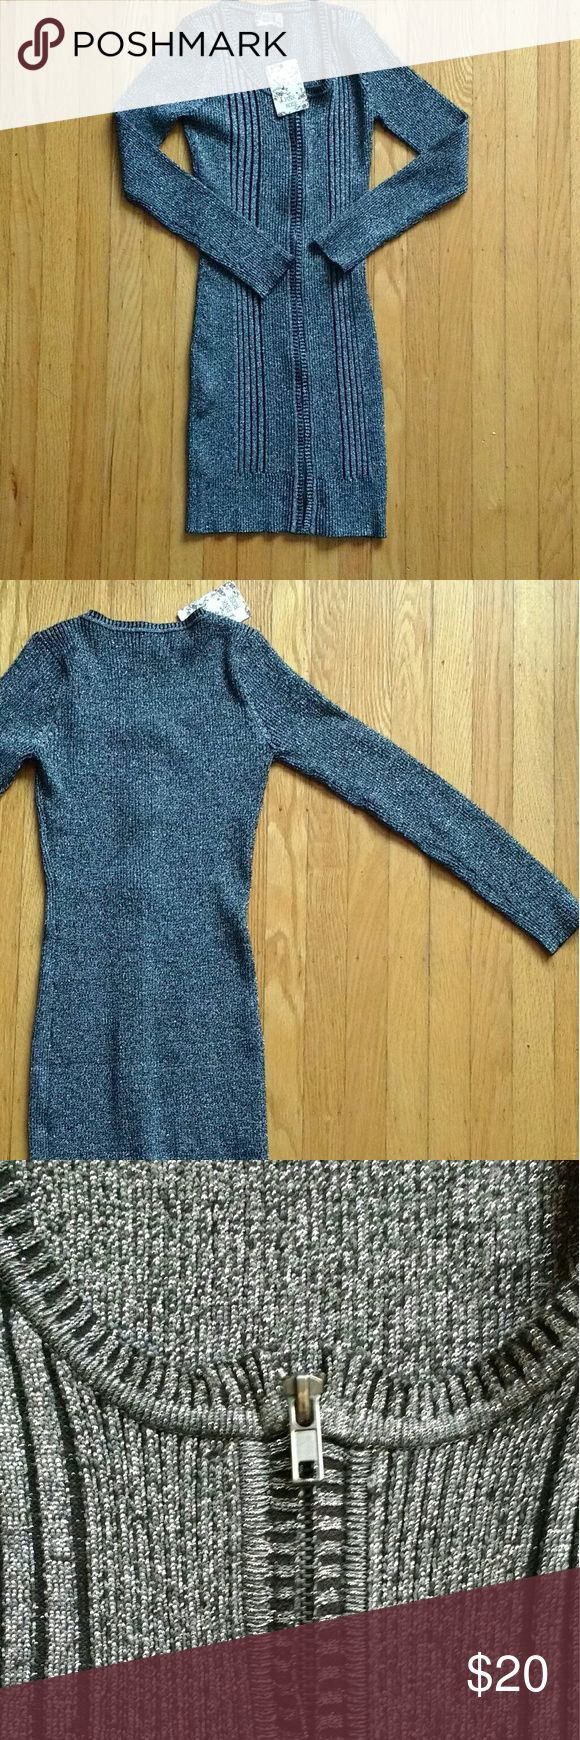 NWT Pink Rose black and silver stretchy dress NWT Pink Rose stretchy black and silver zippered long sleeve dress  size PS petite small  smoke free pet free home Pink Rose Dresses Long Sleeve